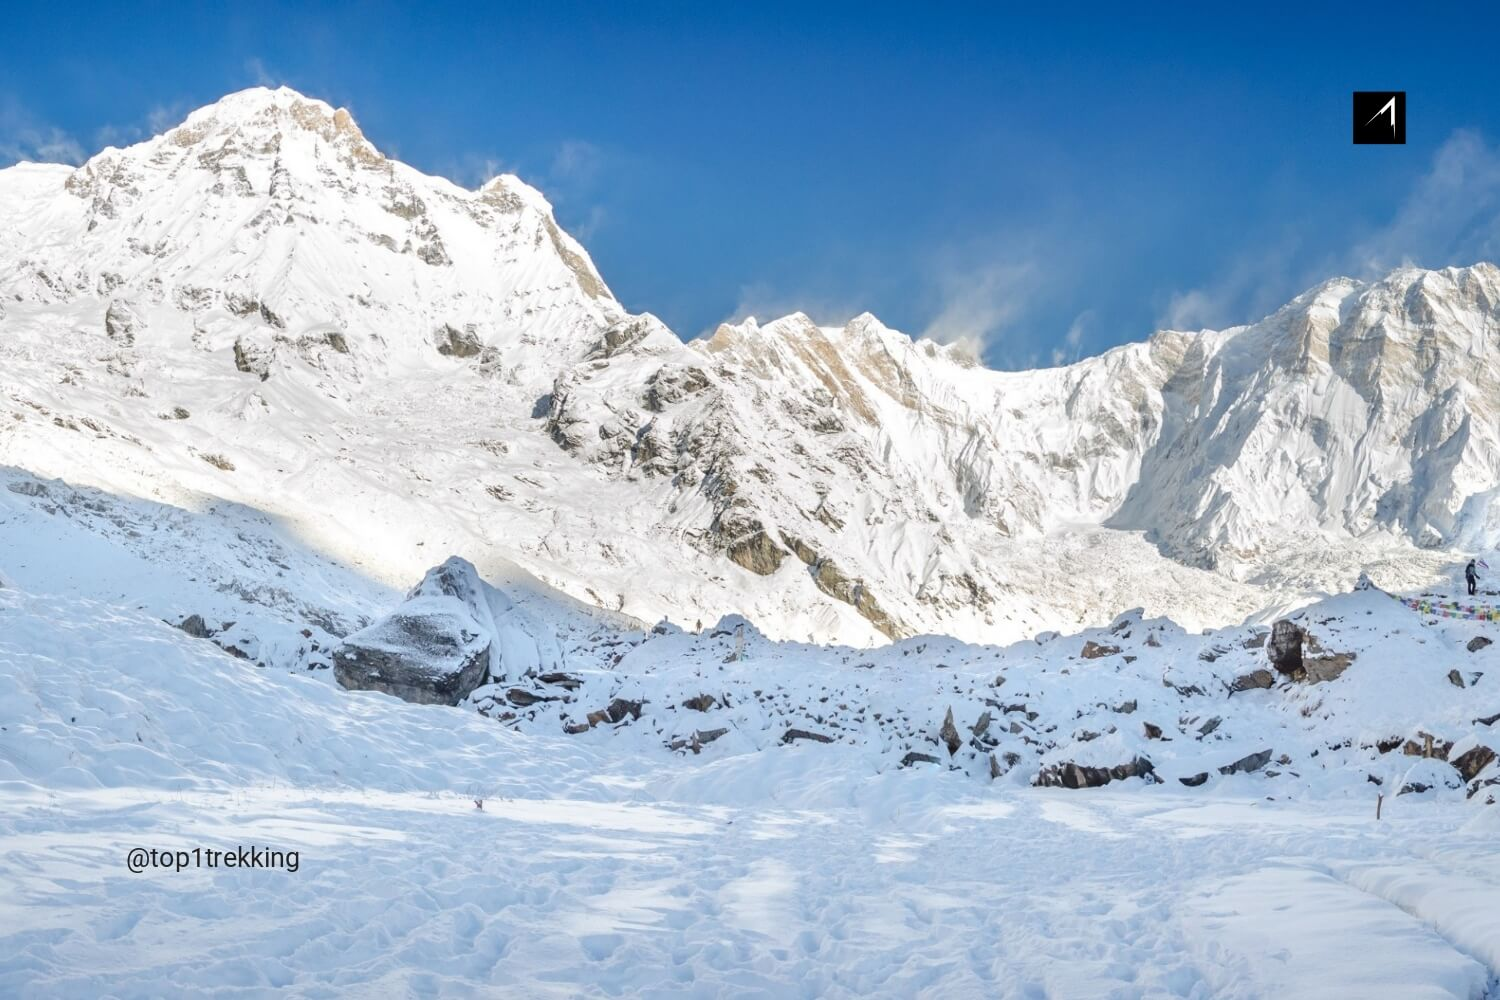 Snow and Annapurna Himalaya mountain Range under crystal clear sky in winter